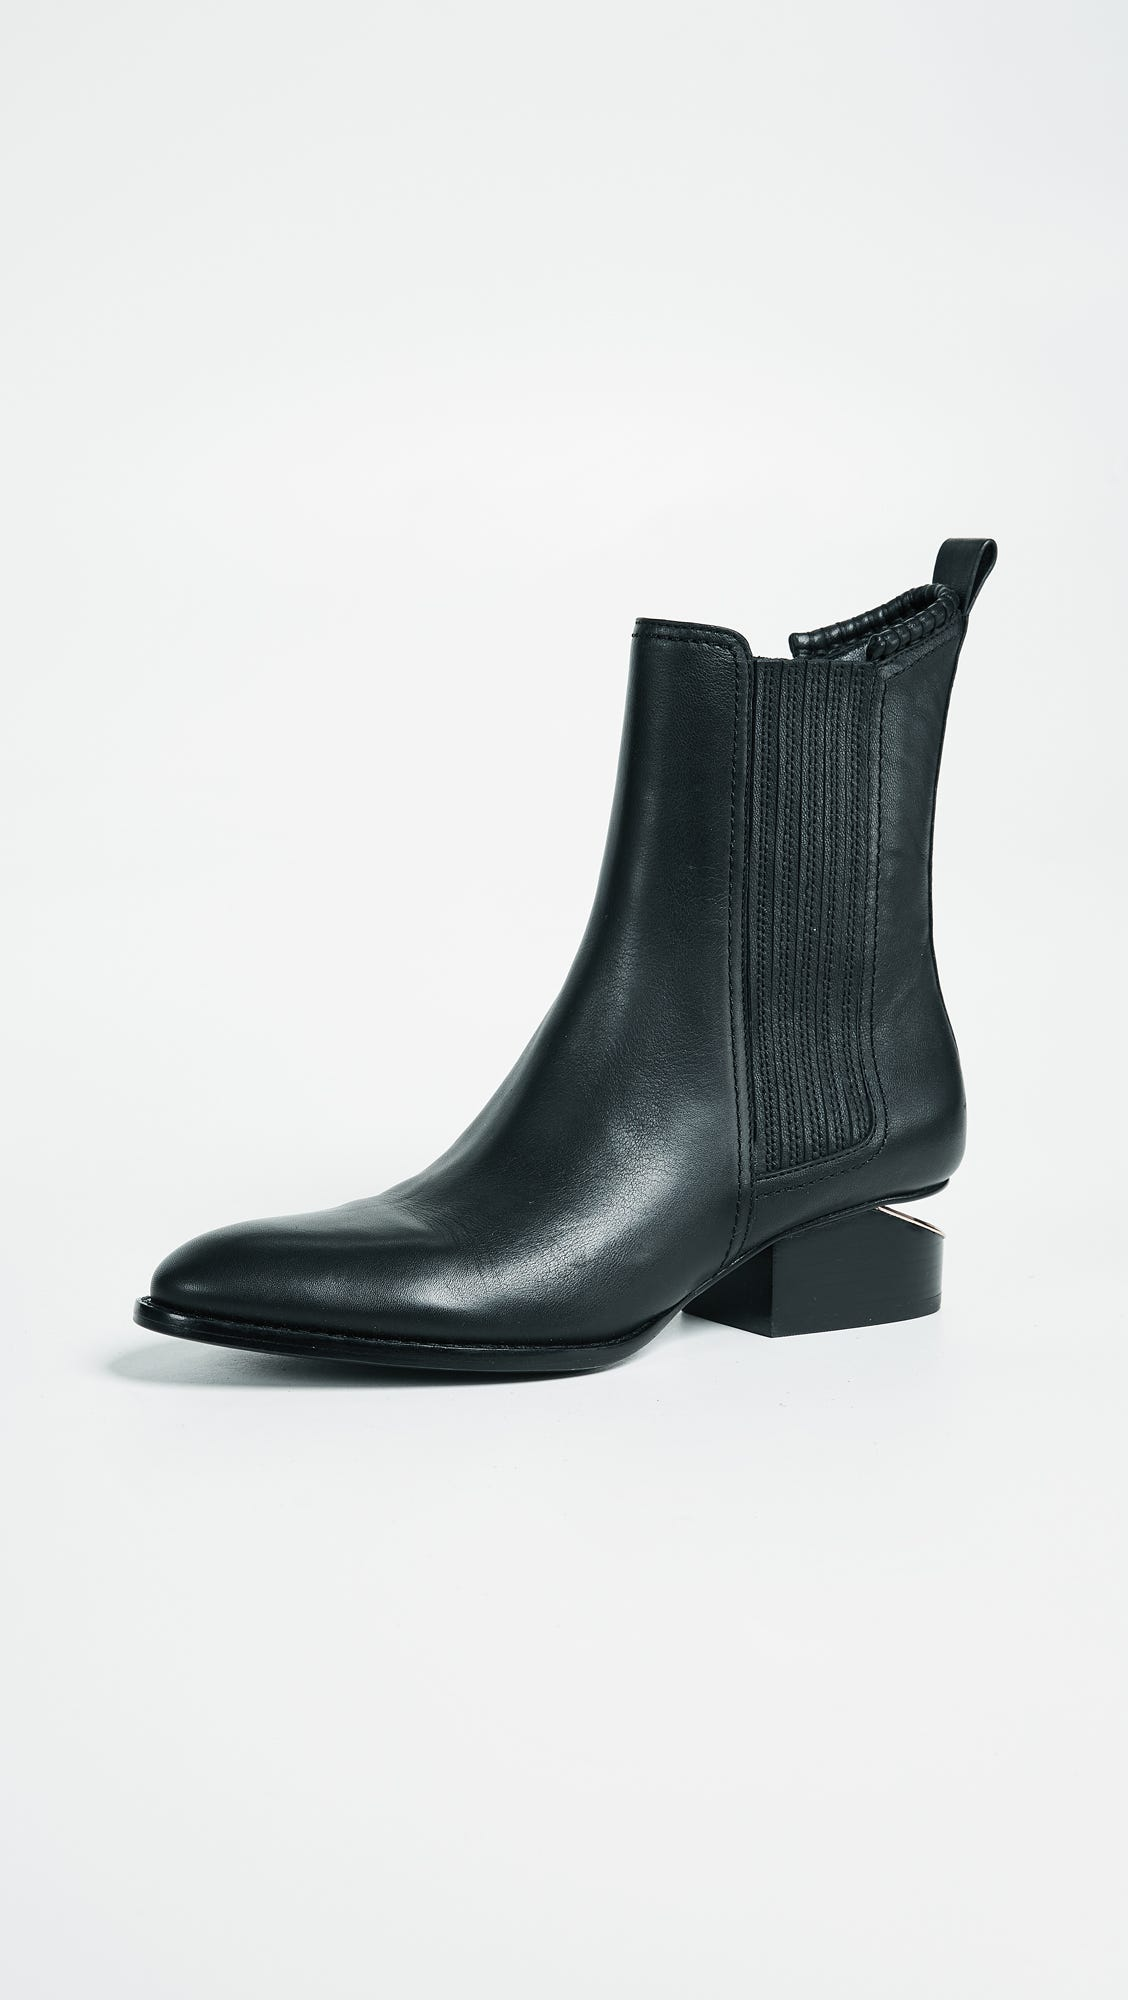 Womens Boots Trends Best Winter 2019 Boot Styles